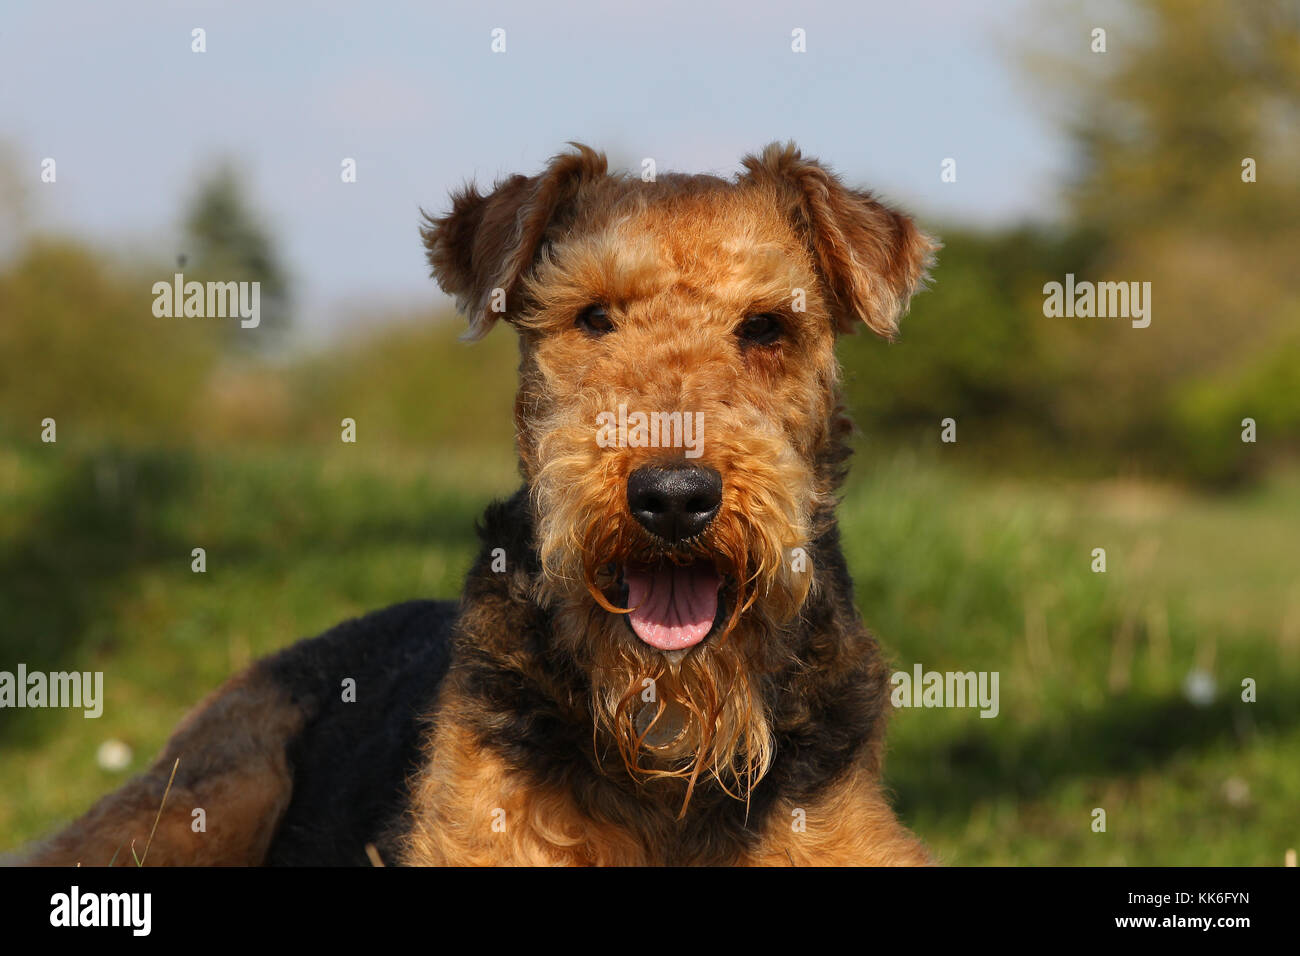 Terrier - Airedale Airedale Terrier Waterside Terrier - Stock Image